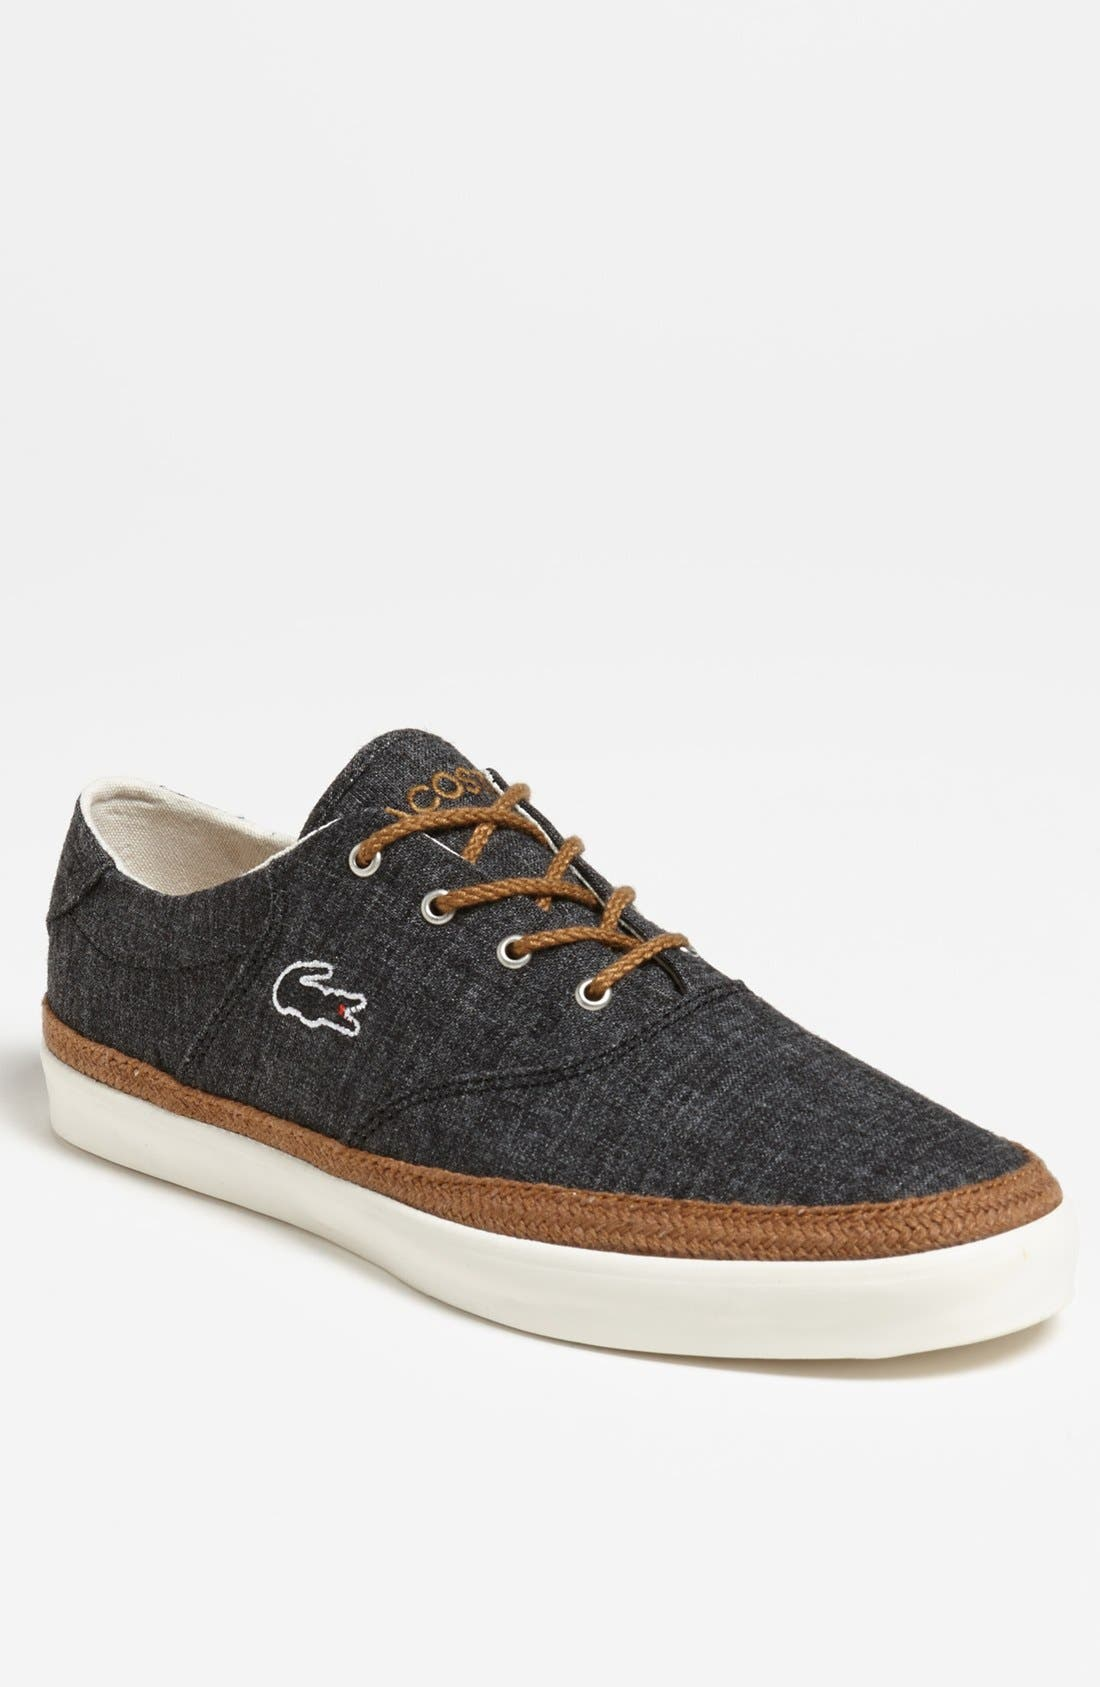 Main Image - Lacoste 'Glendon 2' Sneaker (Men)